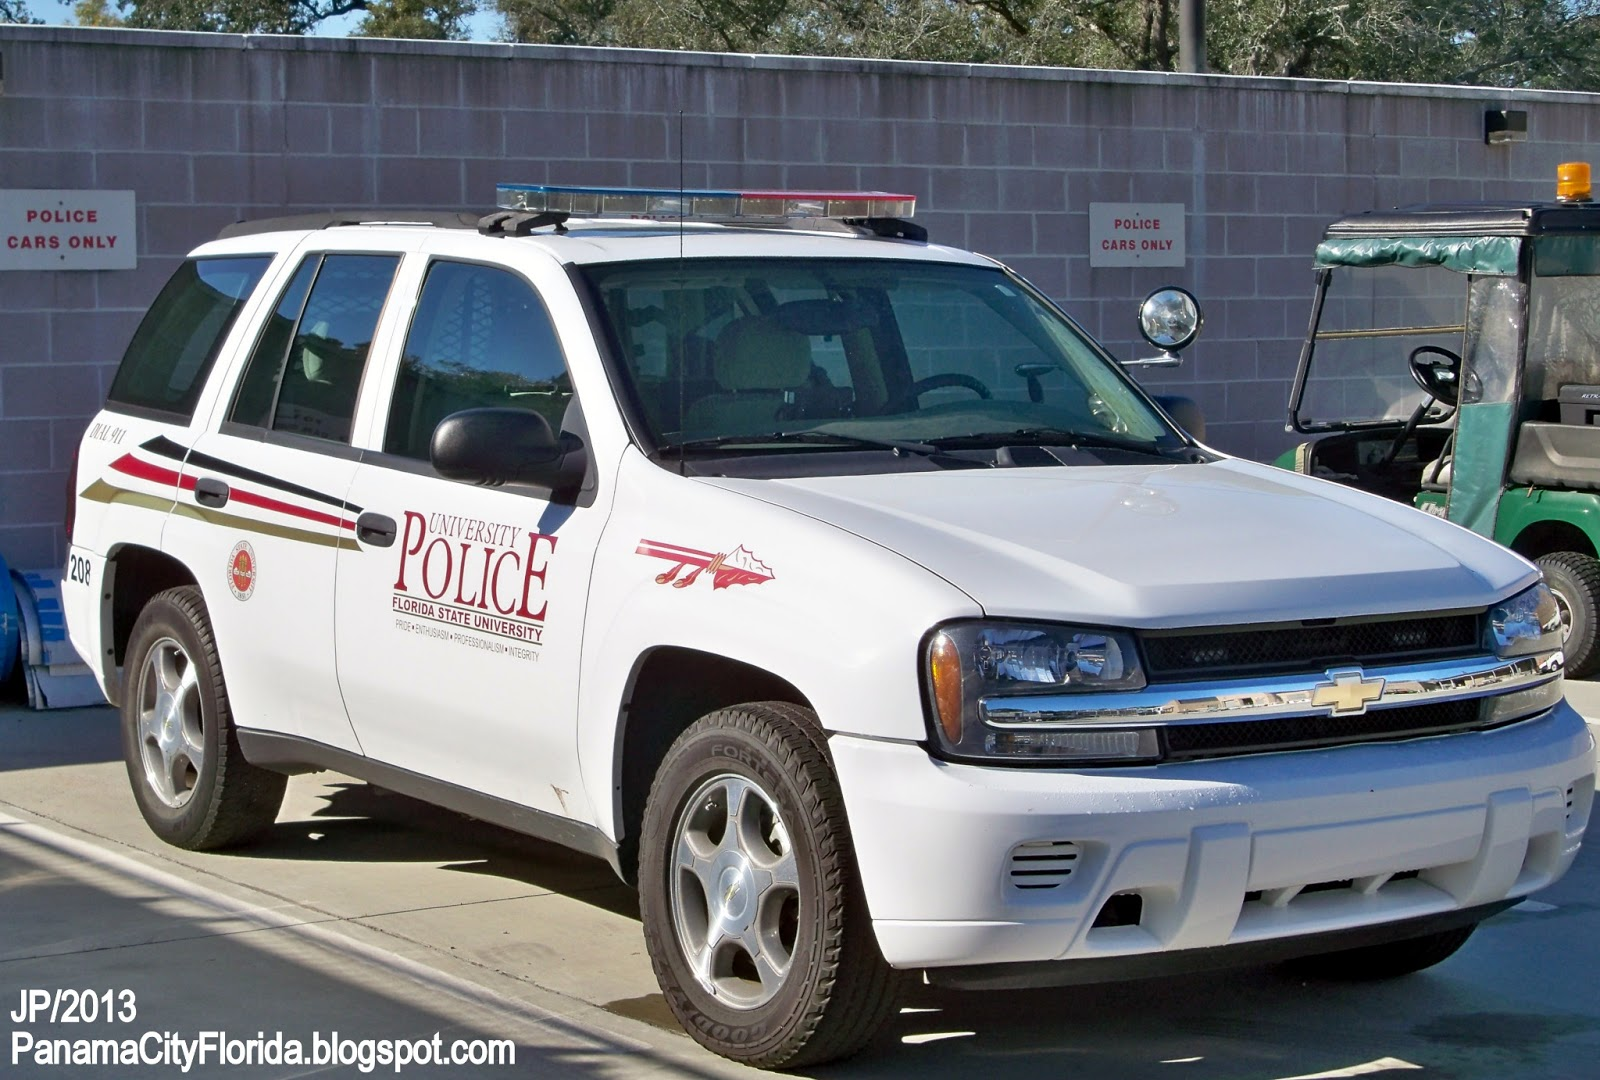 1000+ images about Seminoles Cars and Trucks on Pinterest ...